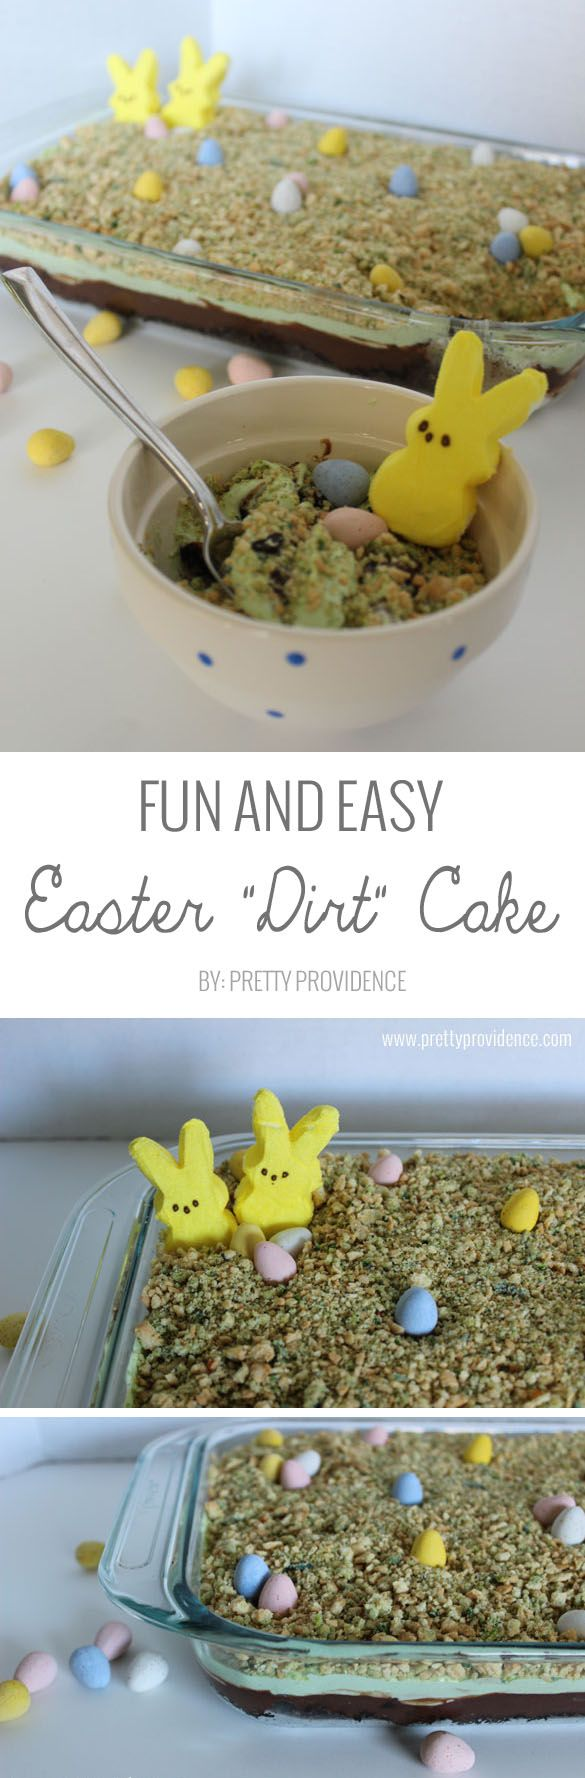 I love this fun and easy Easter dirt cake! I mean, what kid wouldn't love this delicious combination?